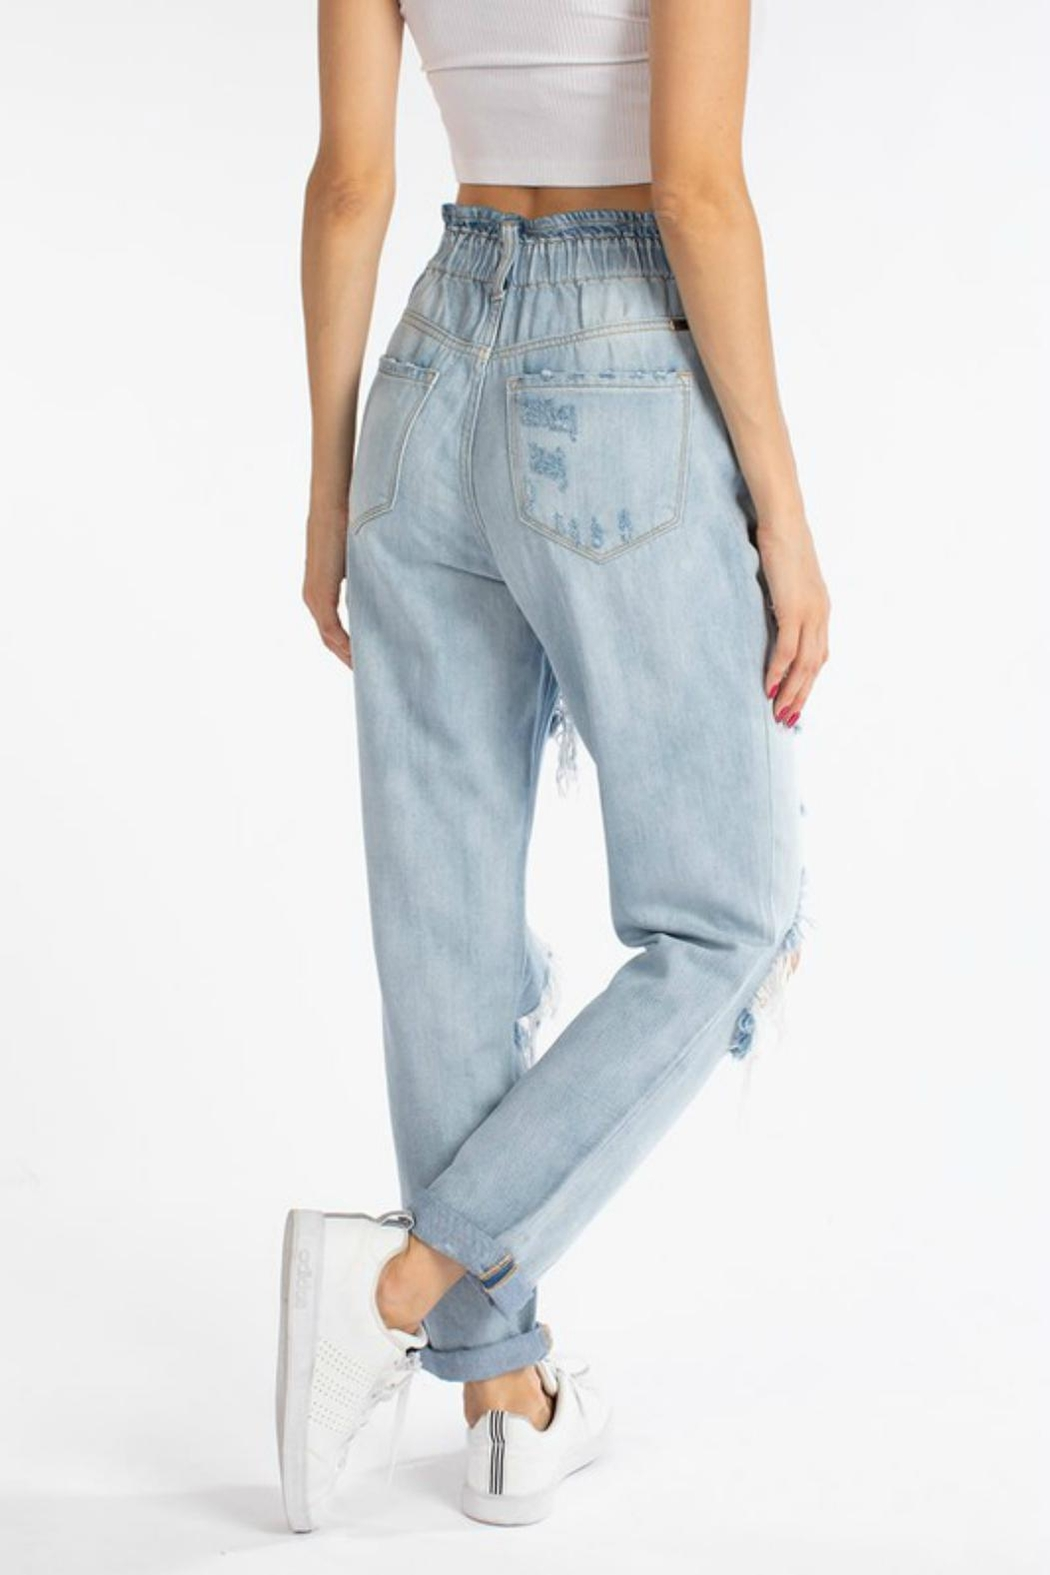 Pretty Little Things Paperbag Mom Jeans - Side Cropped Image